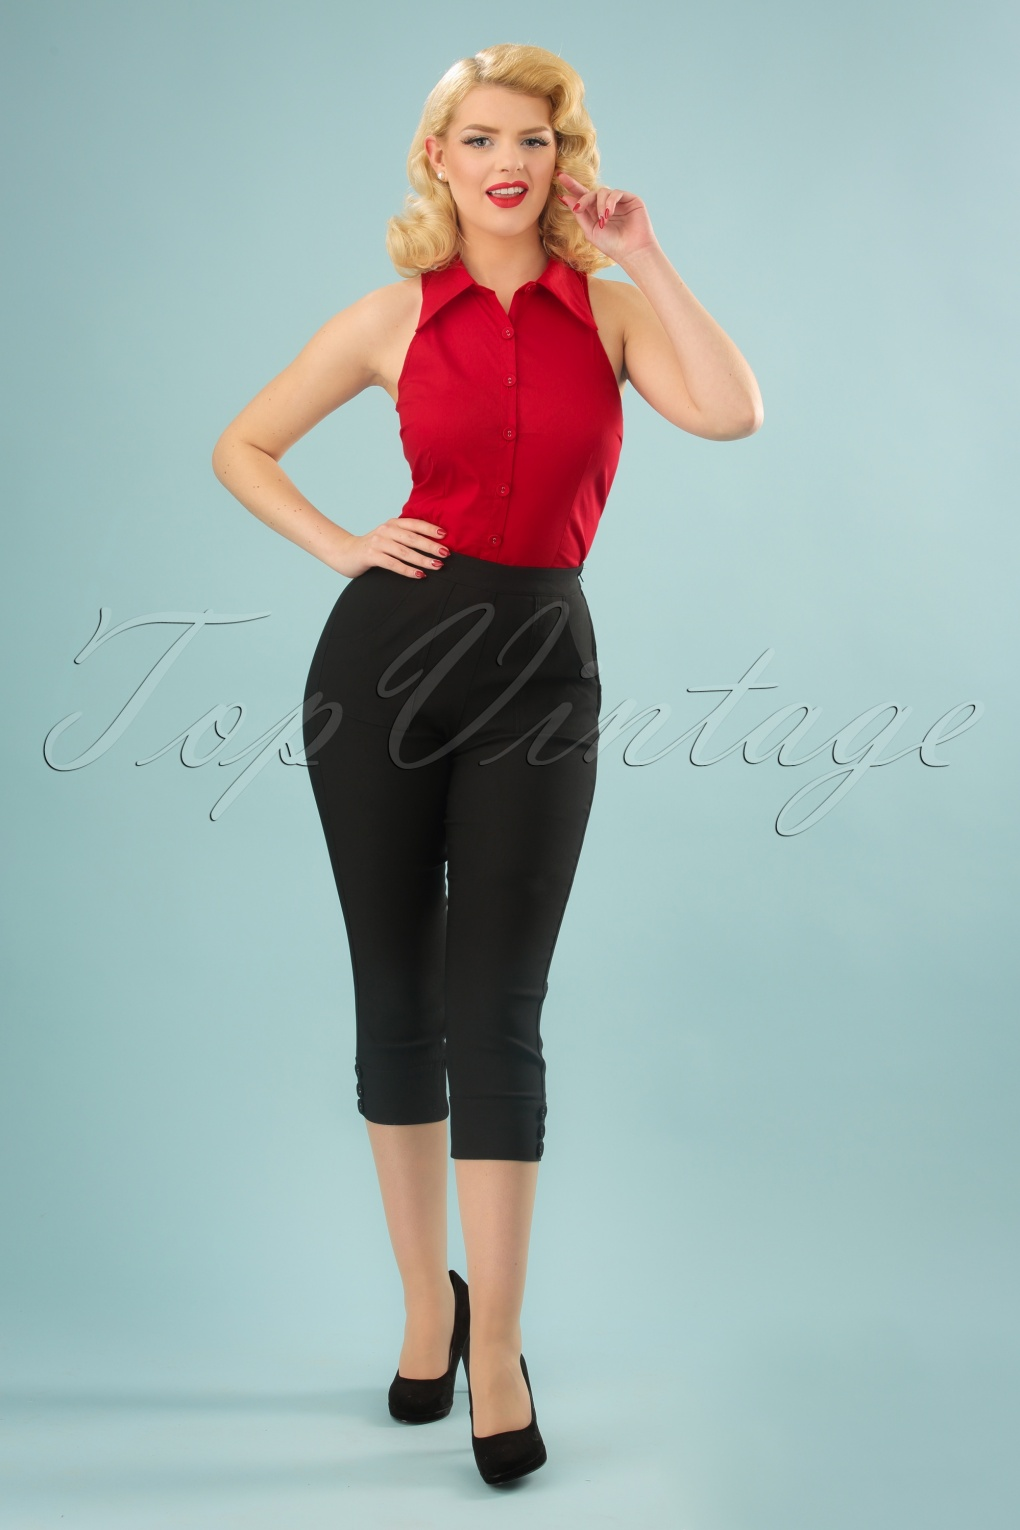 Vintage High Waisted Shorts, Sailor Shorts, Retro Shorts 50s Holly Capri Pants in Black £59.82 AT vintagedancer.com